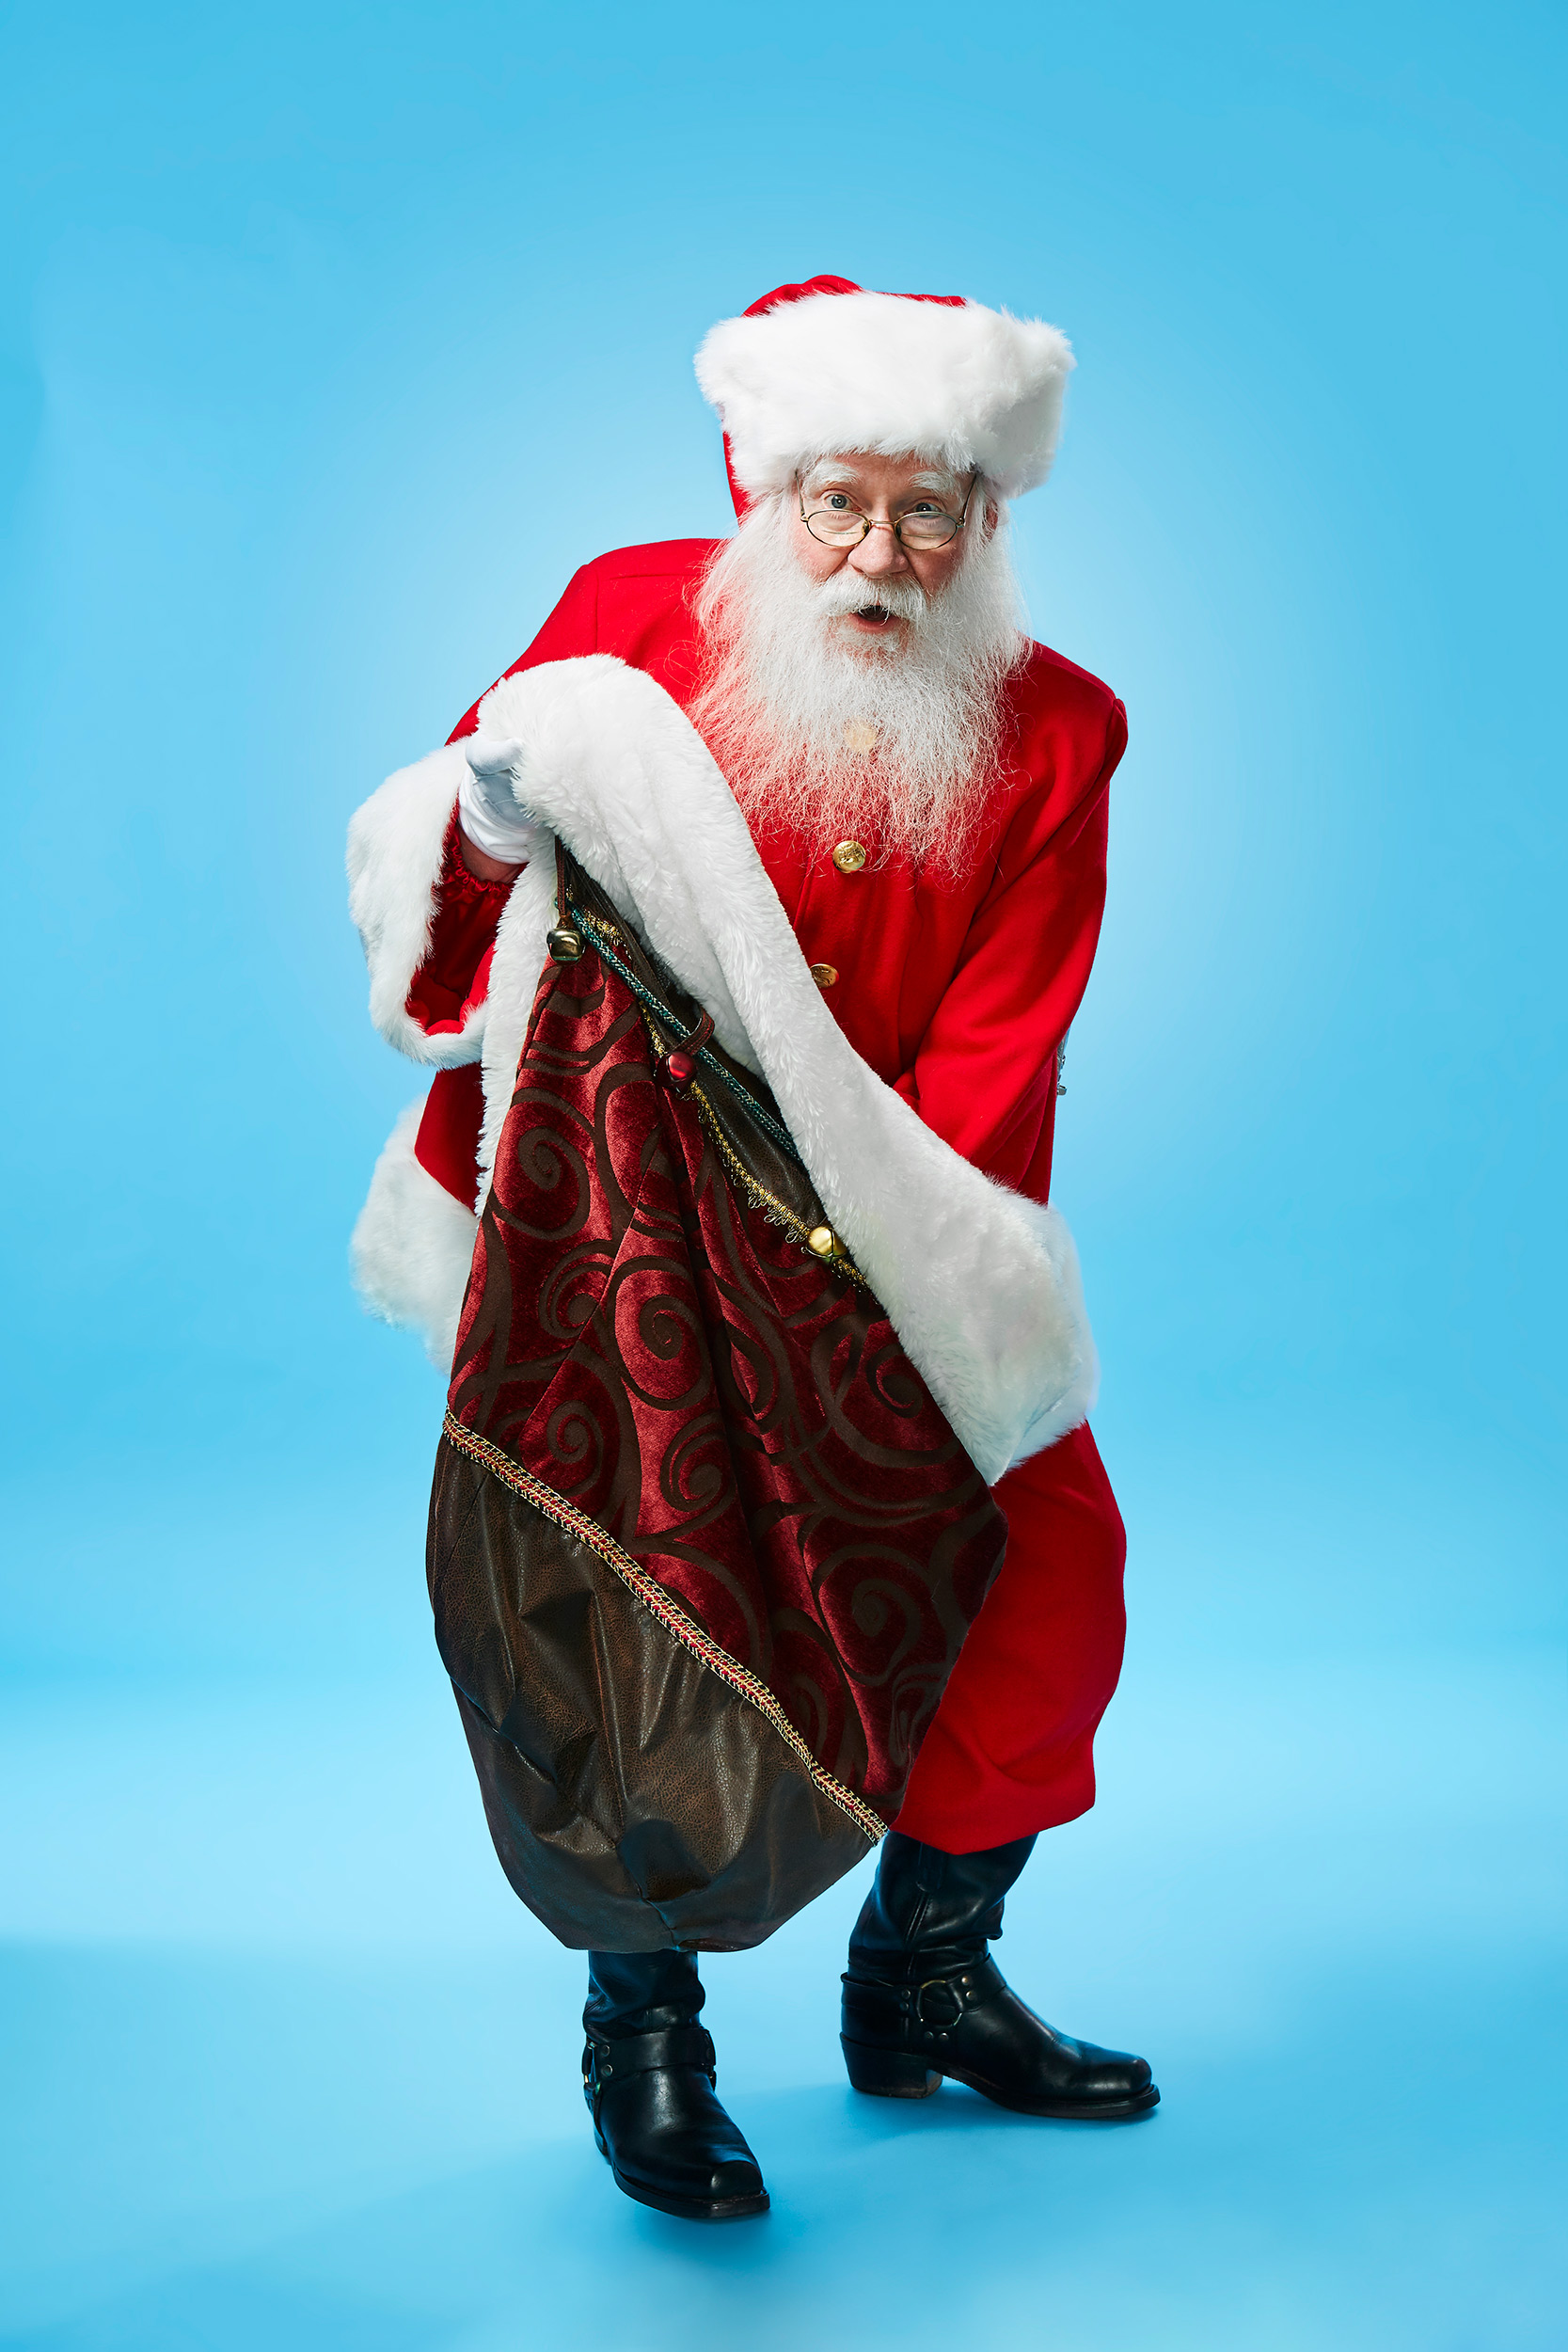 Philly Mag - Santa Paul - Christmas